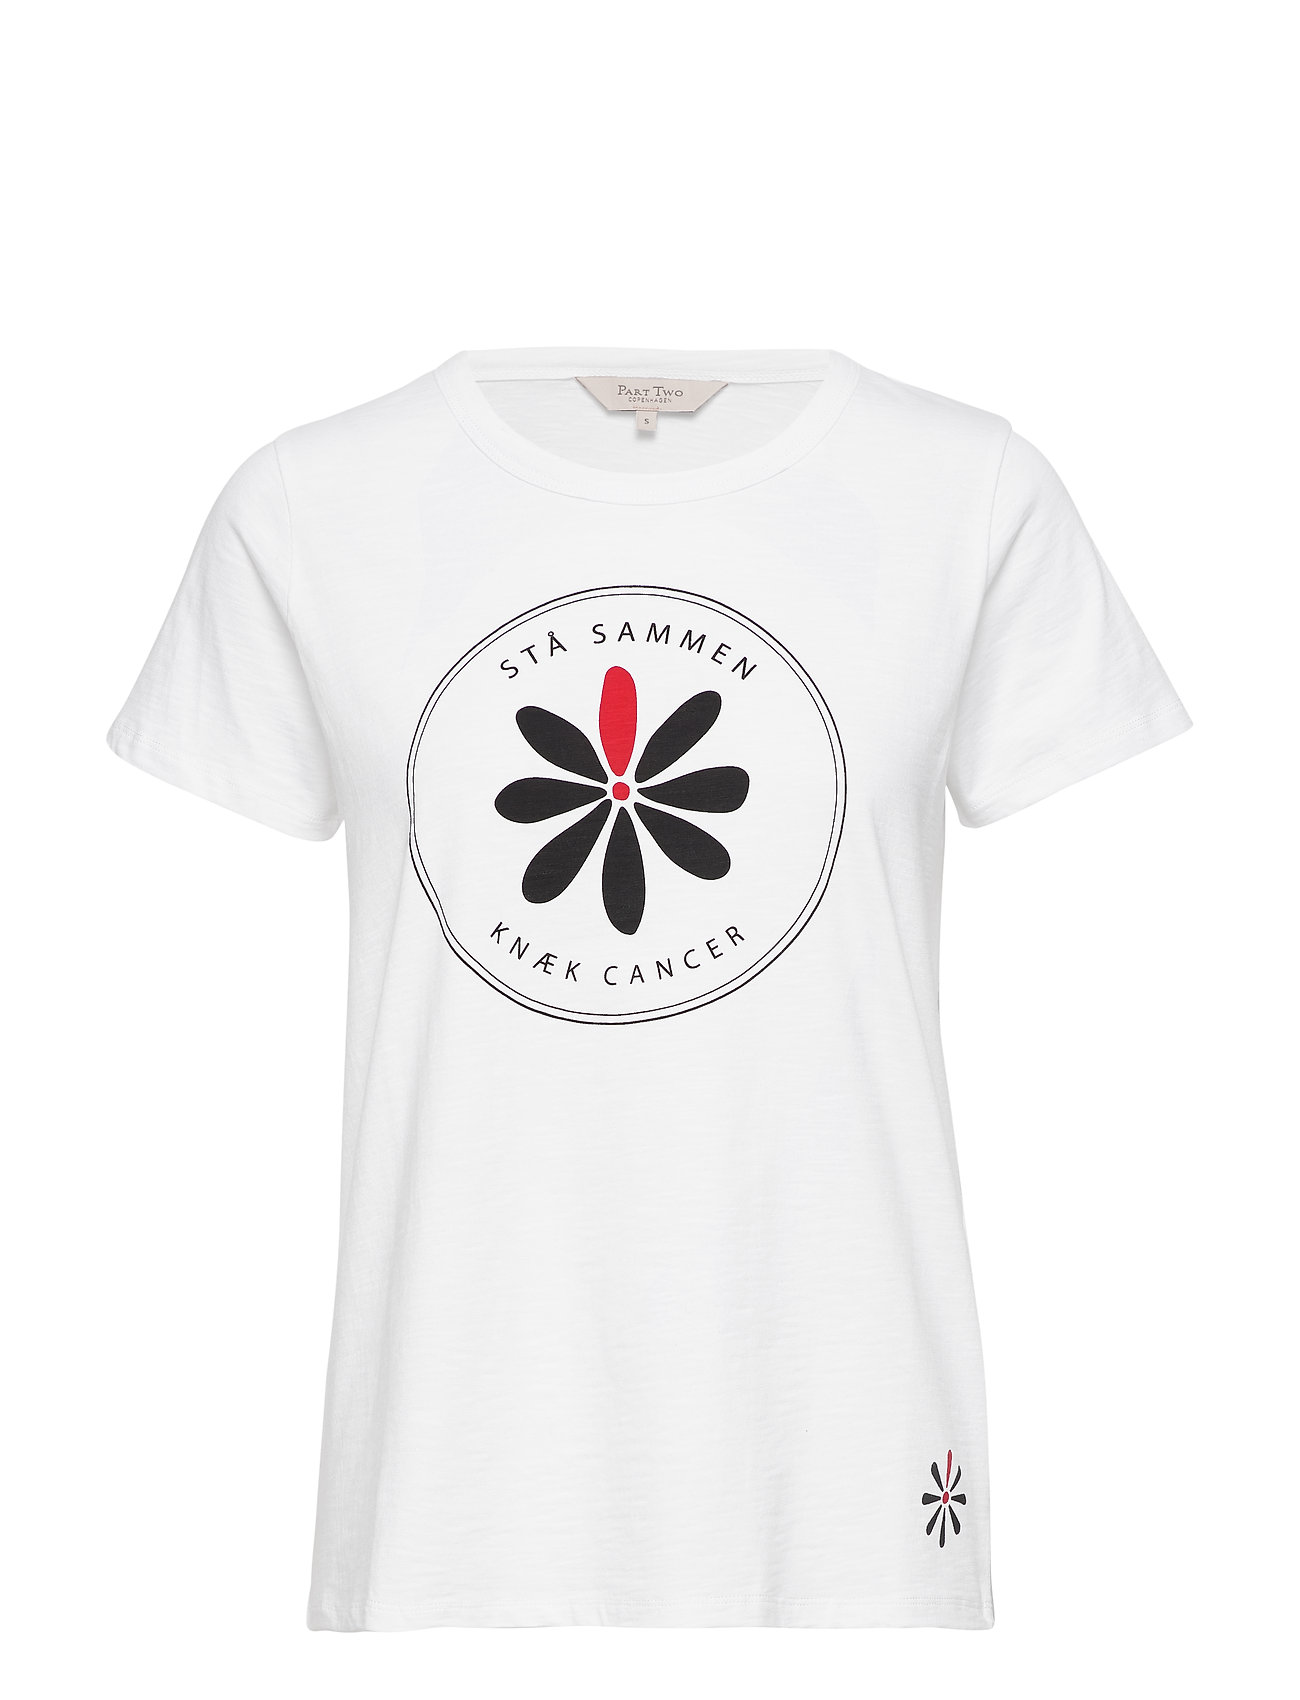 Part Two Knæk Cancer Knæk Cancer T-shirt - WHITE